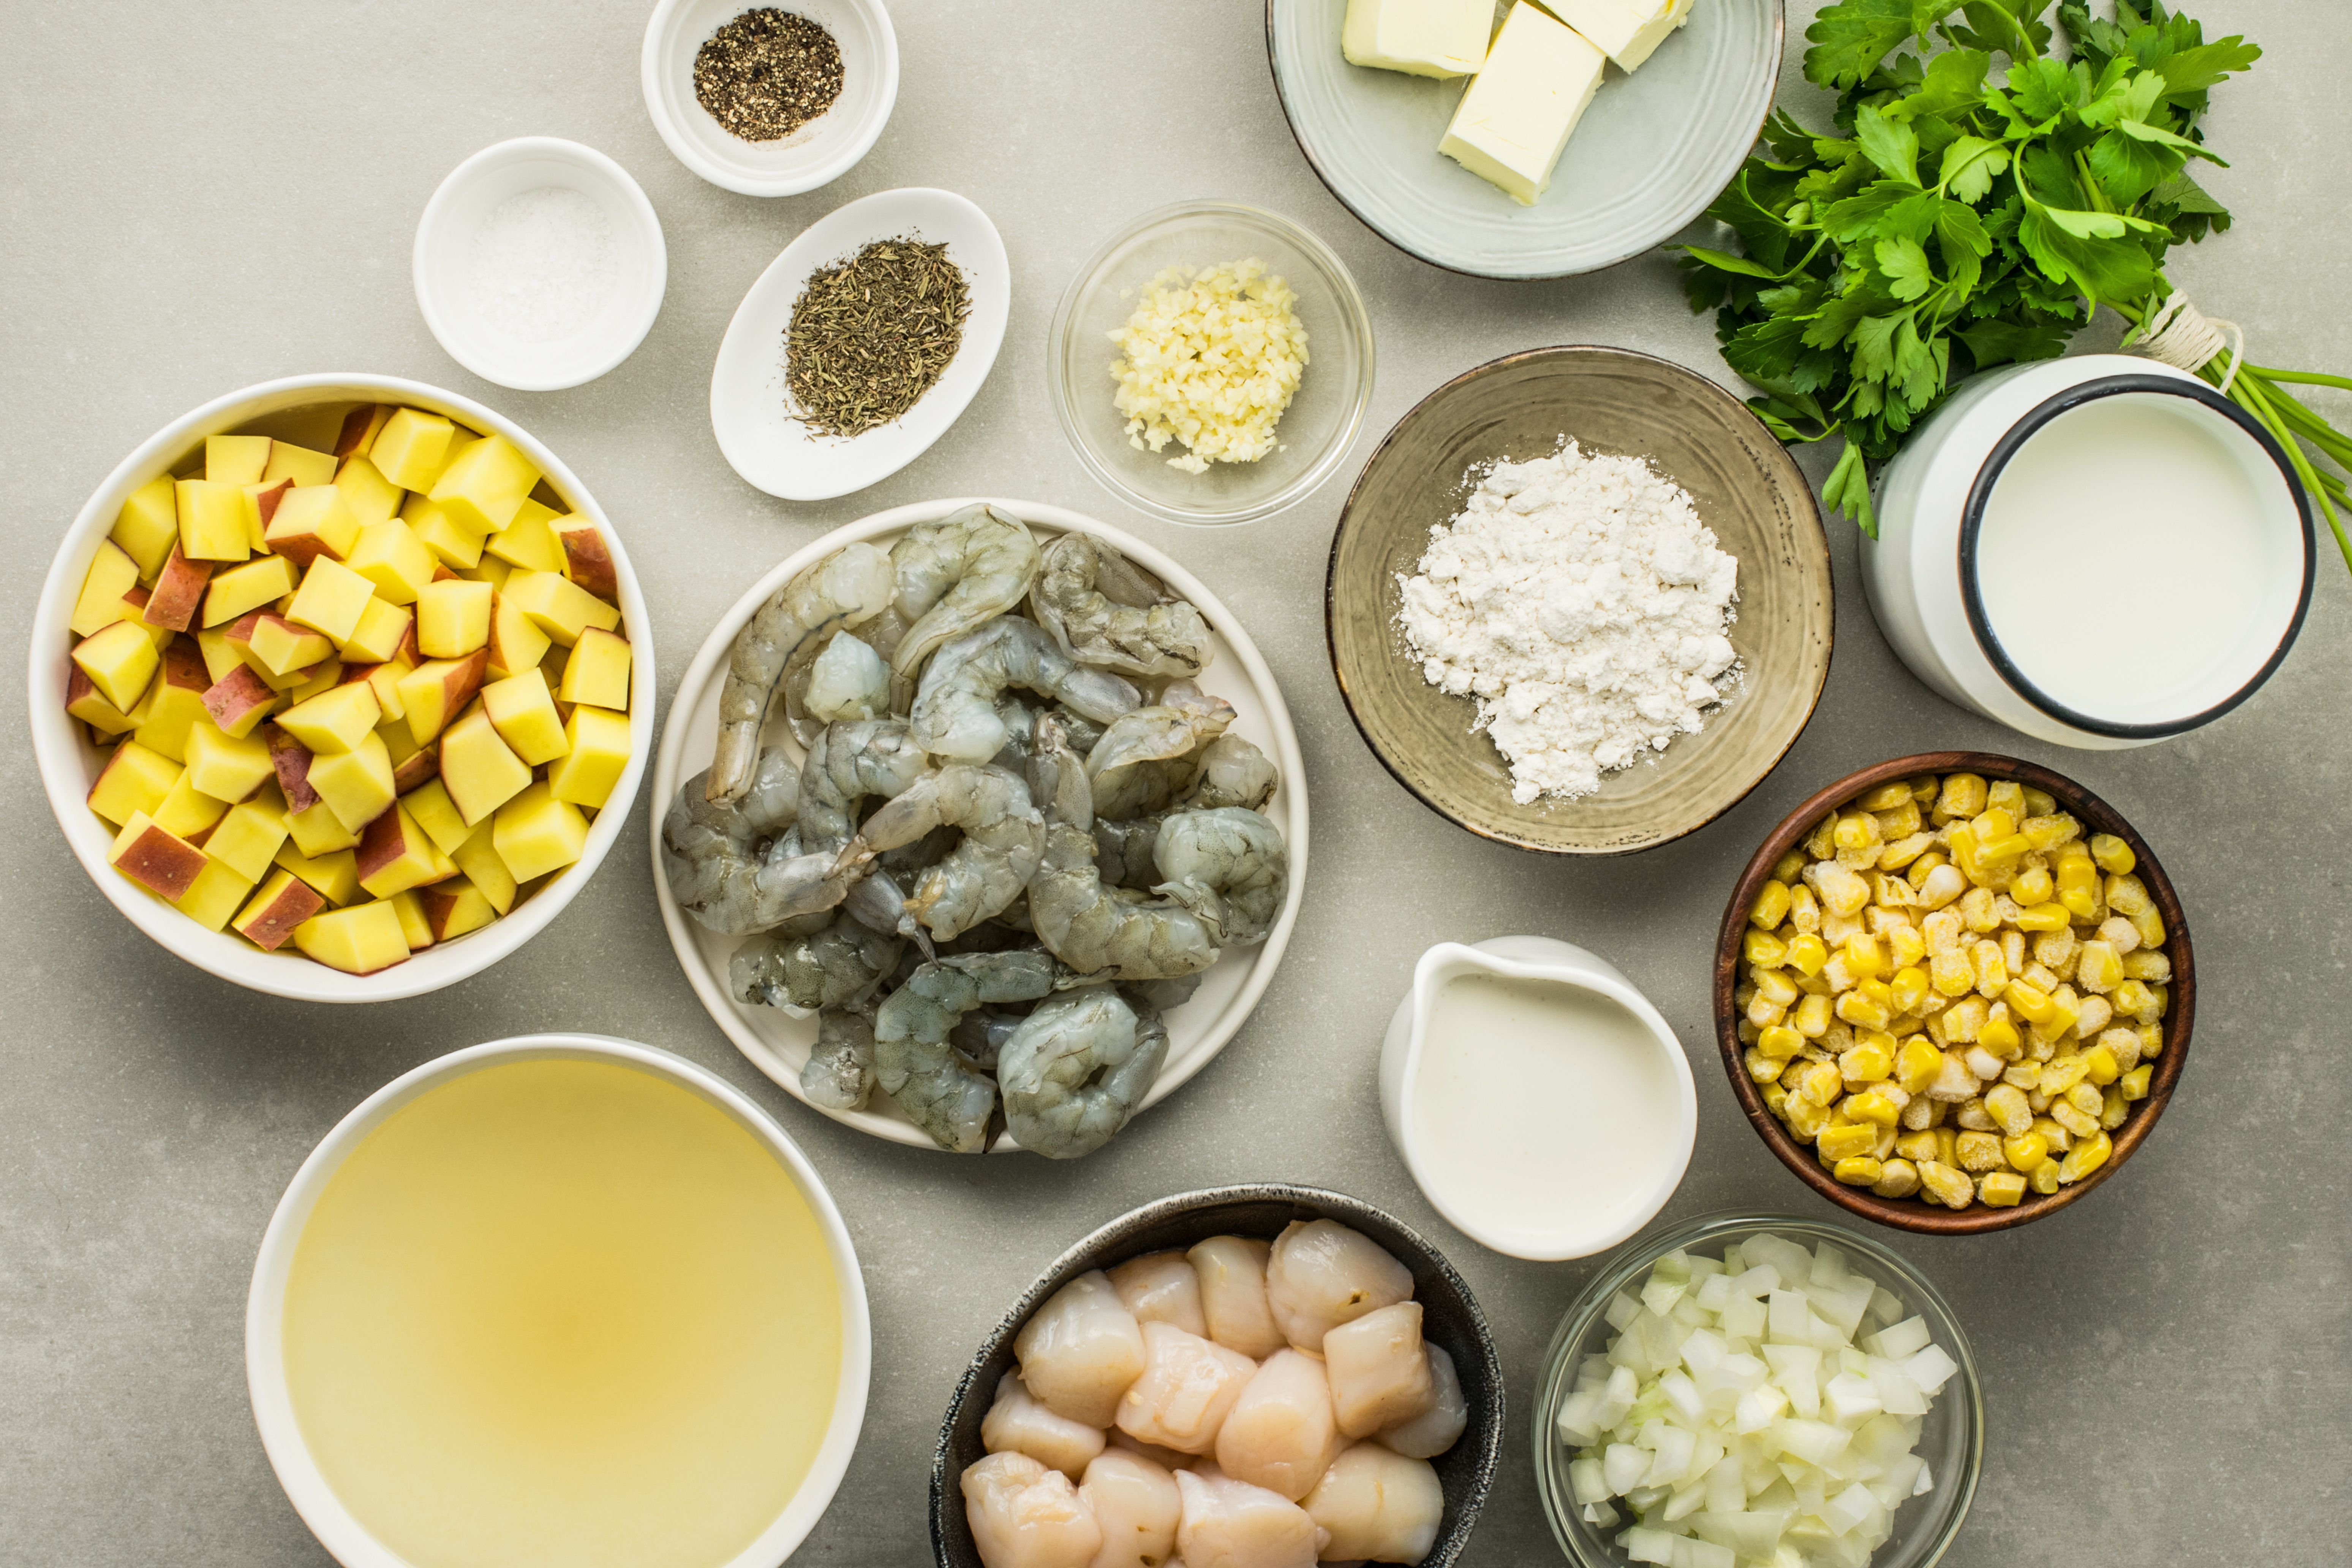 Ingredients for creamy corn and seafood chowder